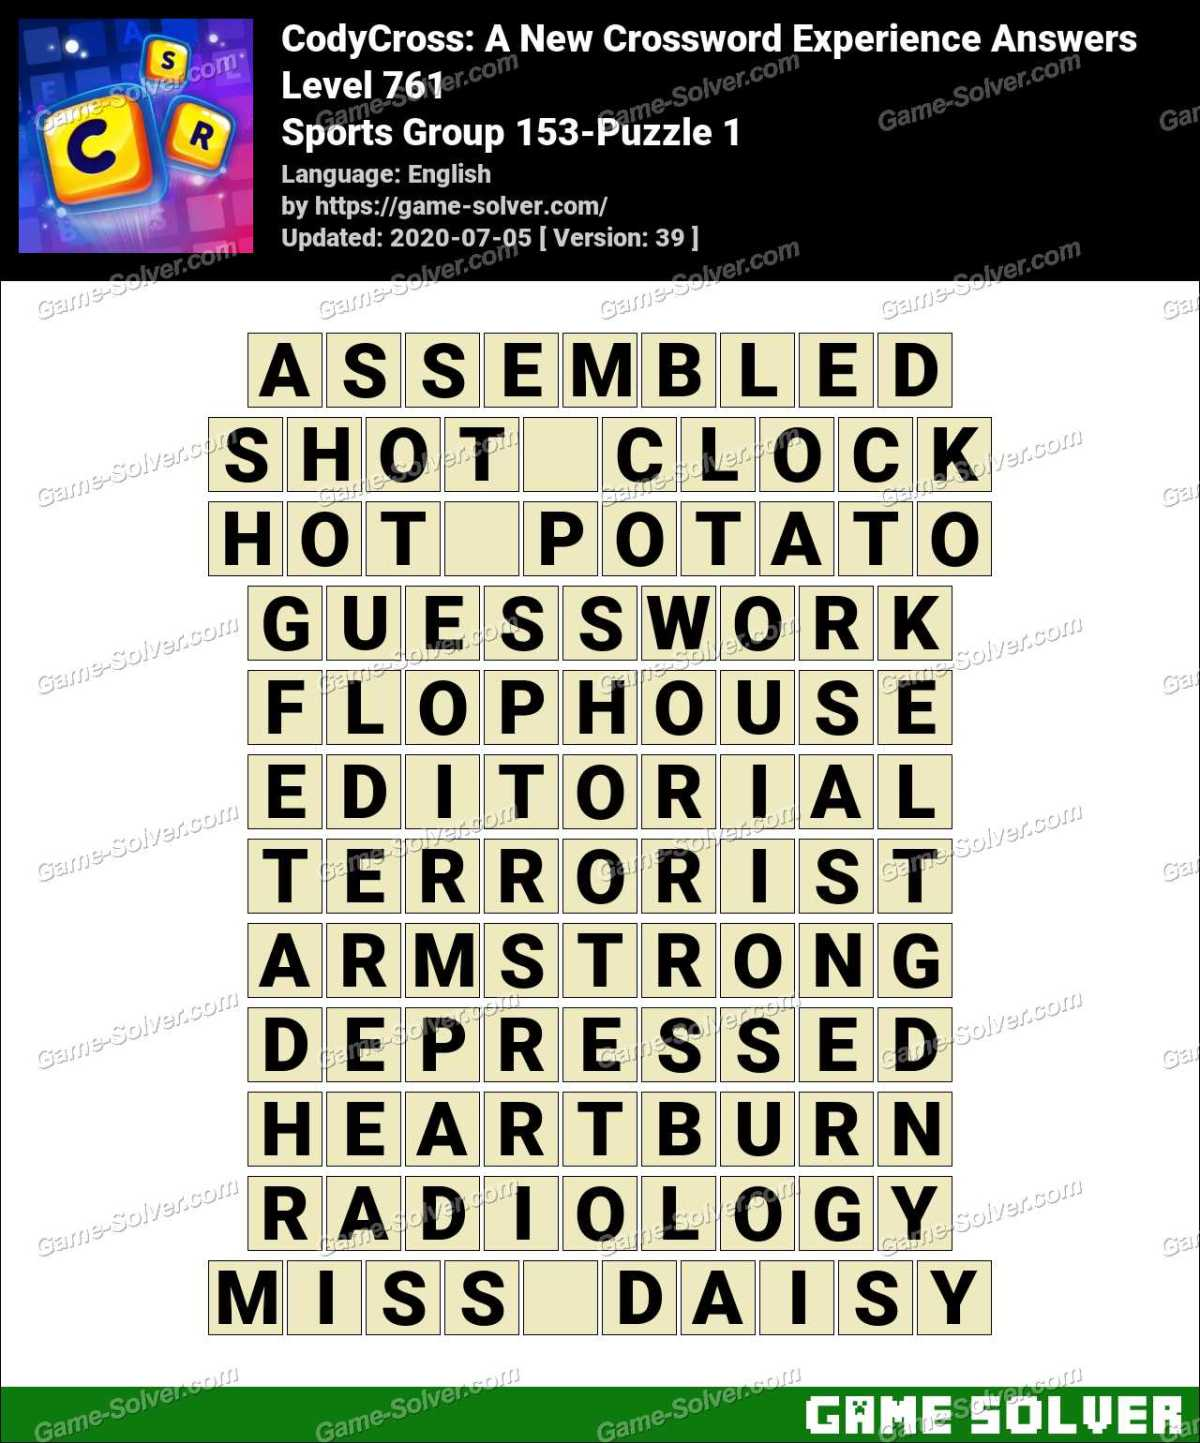 CodyCross Sports Group 153-Puzzle 1 Answers